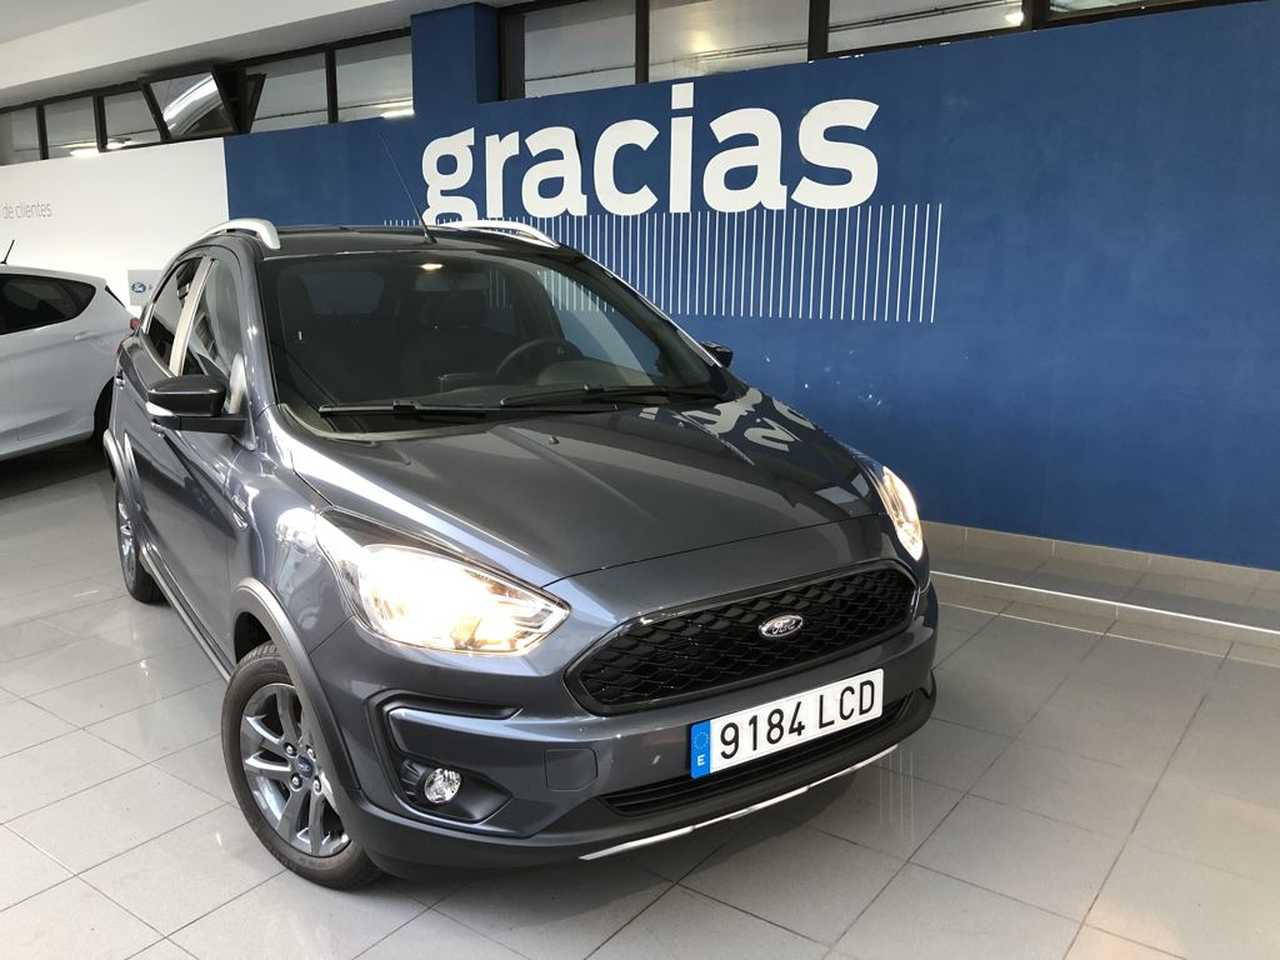 FORD KA+ ACTIVE 1.19 Ti-VCT 63KW (85CV) S&S Stage 6.2 (Nuevo)  - Foto 1